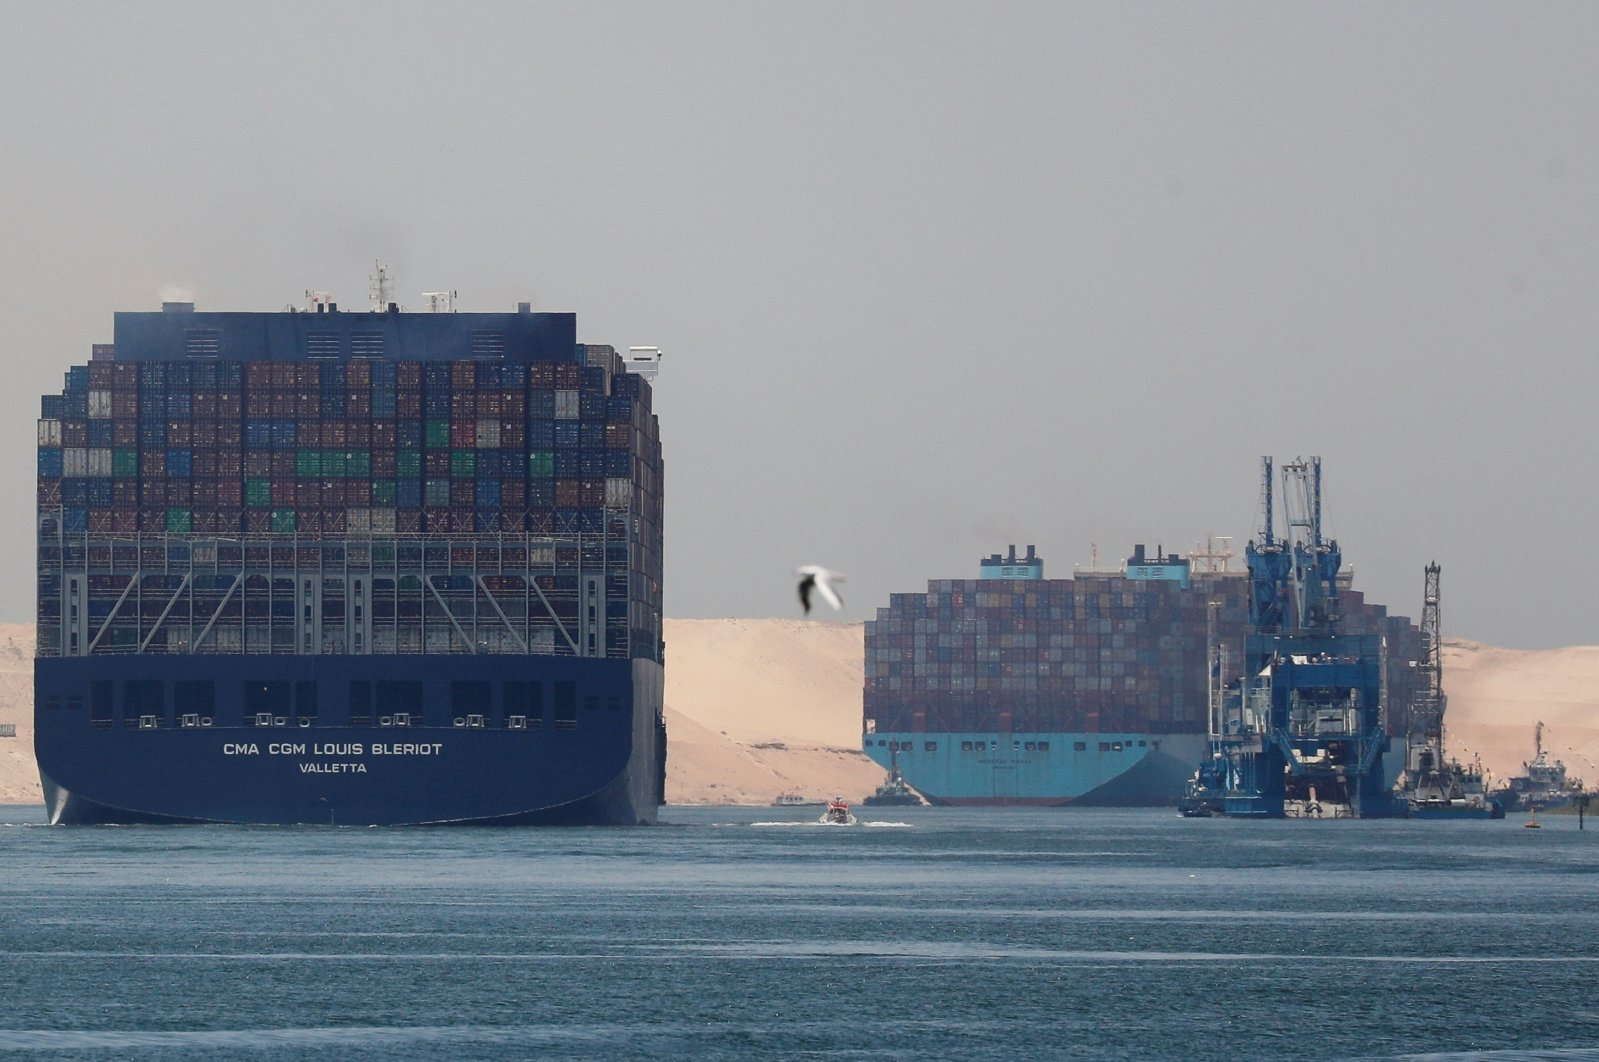 CMA CGM Louis Bleriot and a Maersk Line container ship pass through the Suez Canal in Ismailia, Egypt, July 7, 2021. (Reuters Photo)